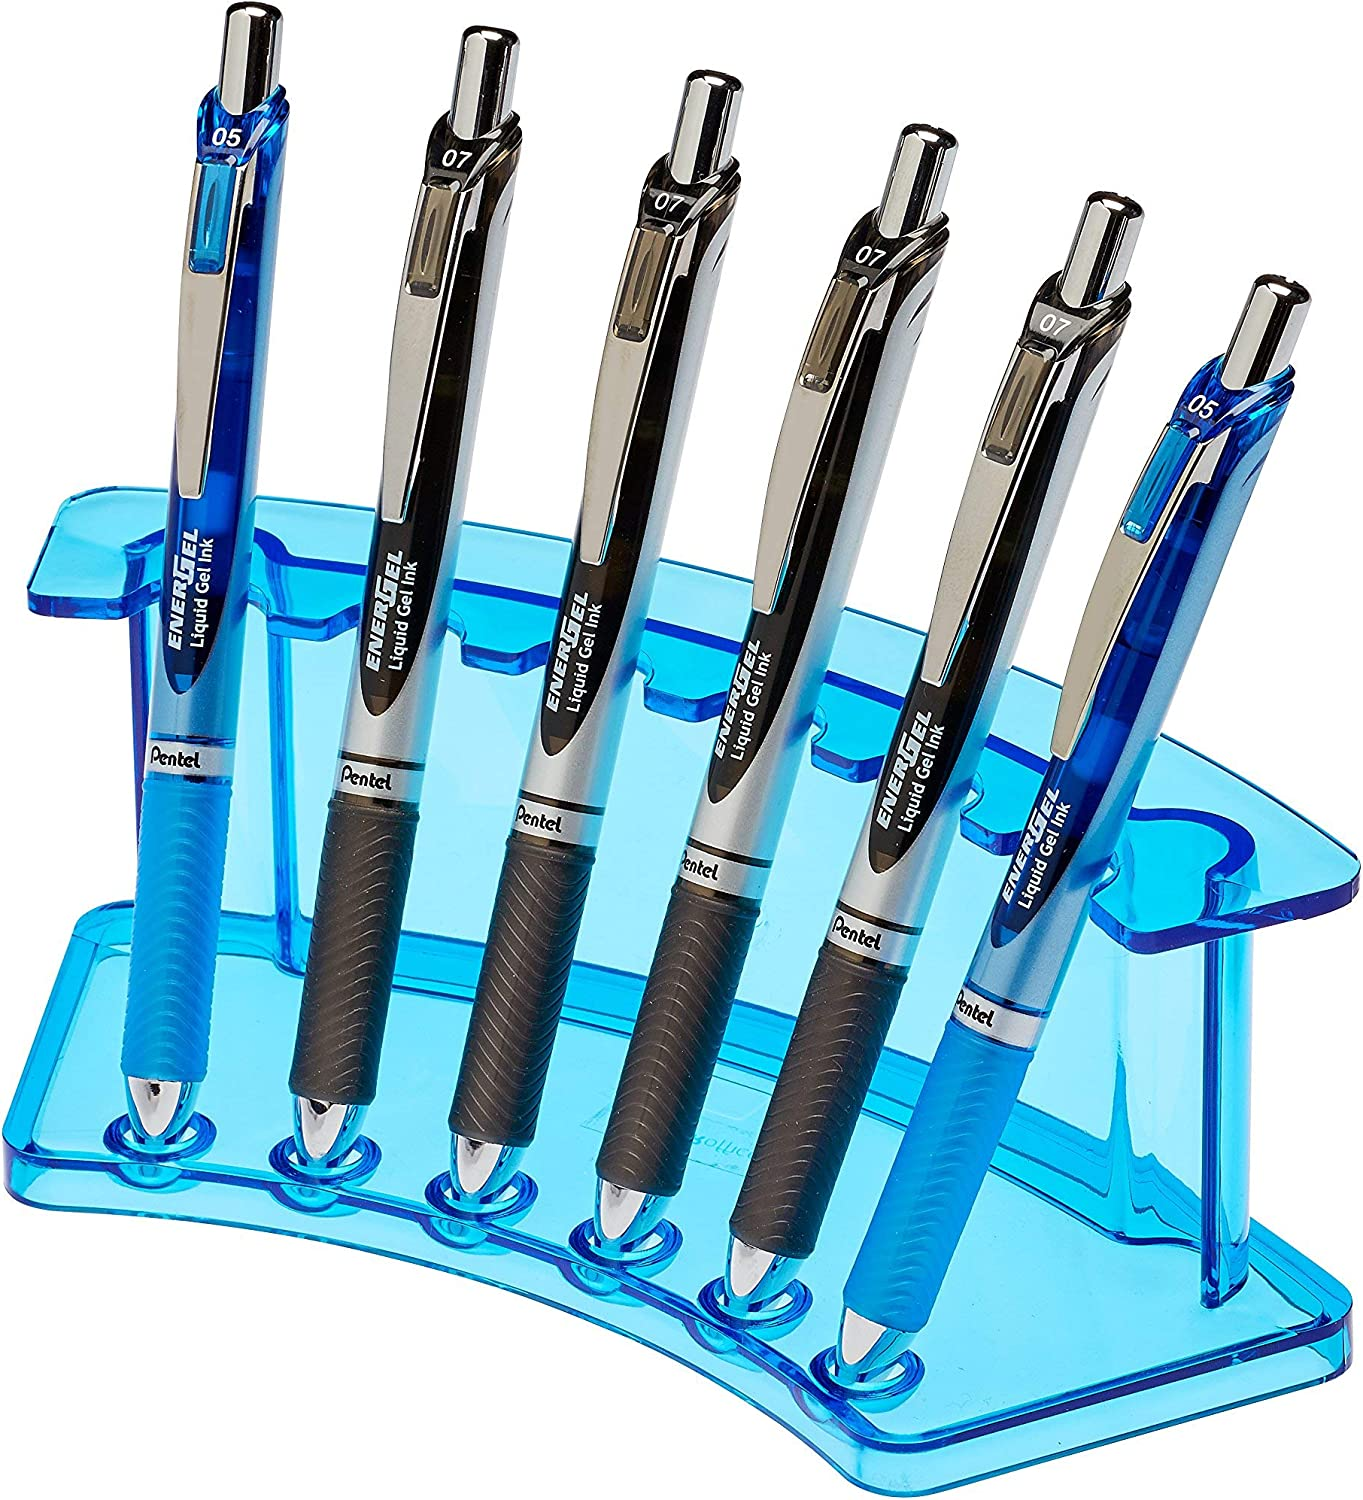 Amazon Com Adiroffice Vertical 6 Slot Display Stand Pack Of 2 Durable Acrylic Holder For Pens Pencils Organizer For Home Office Store Use Crystal Blue Office Products